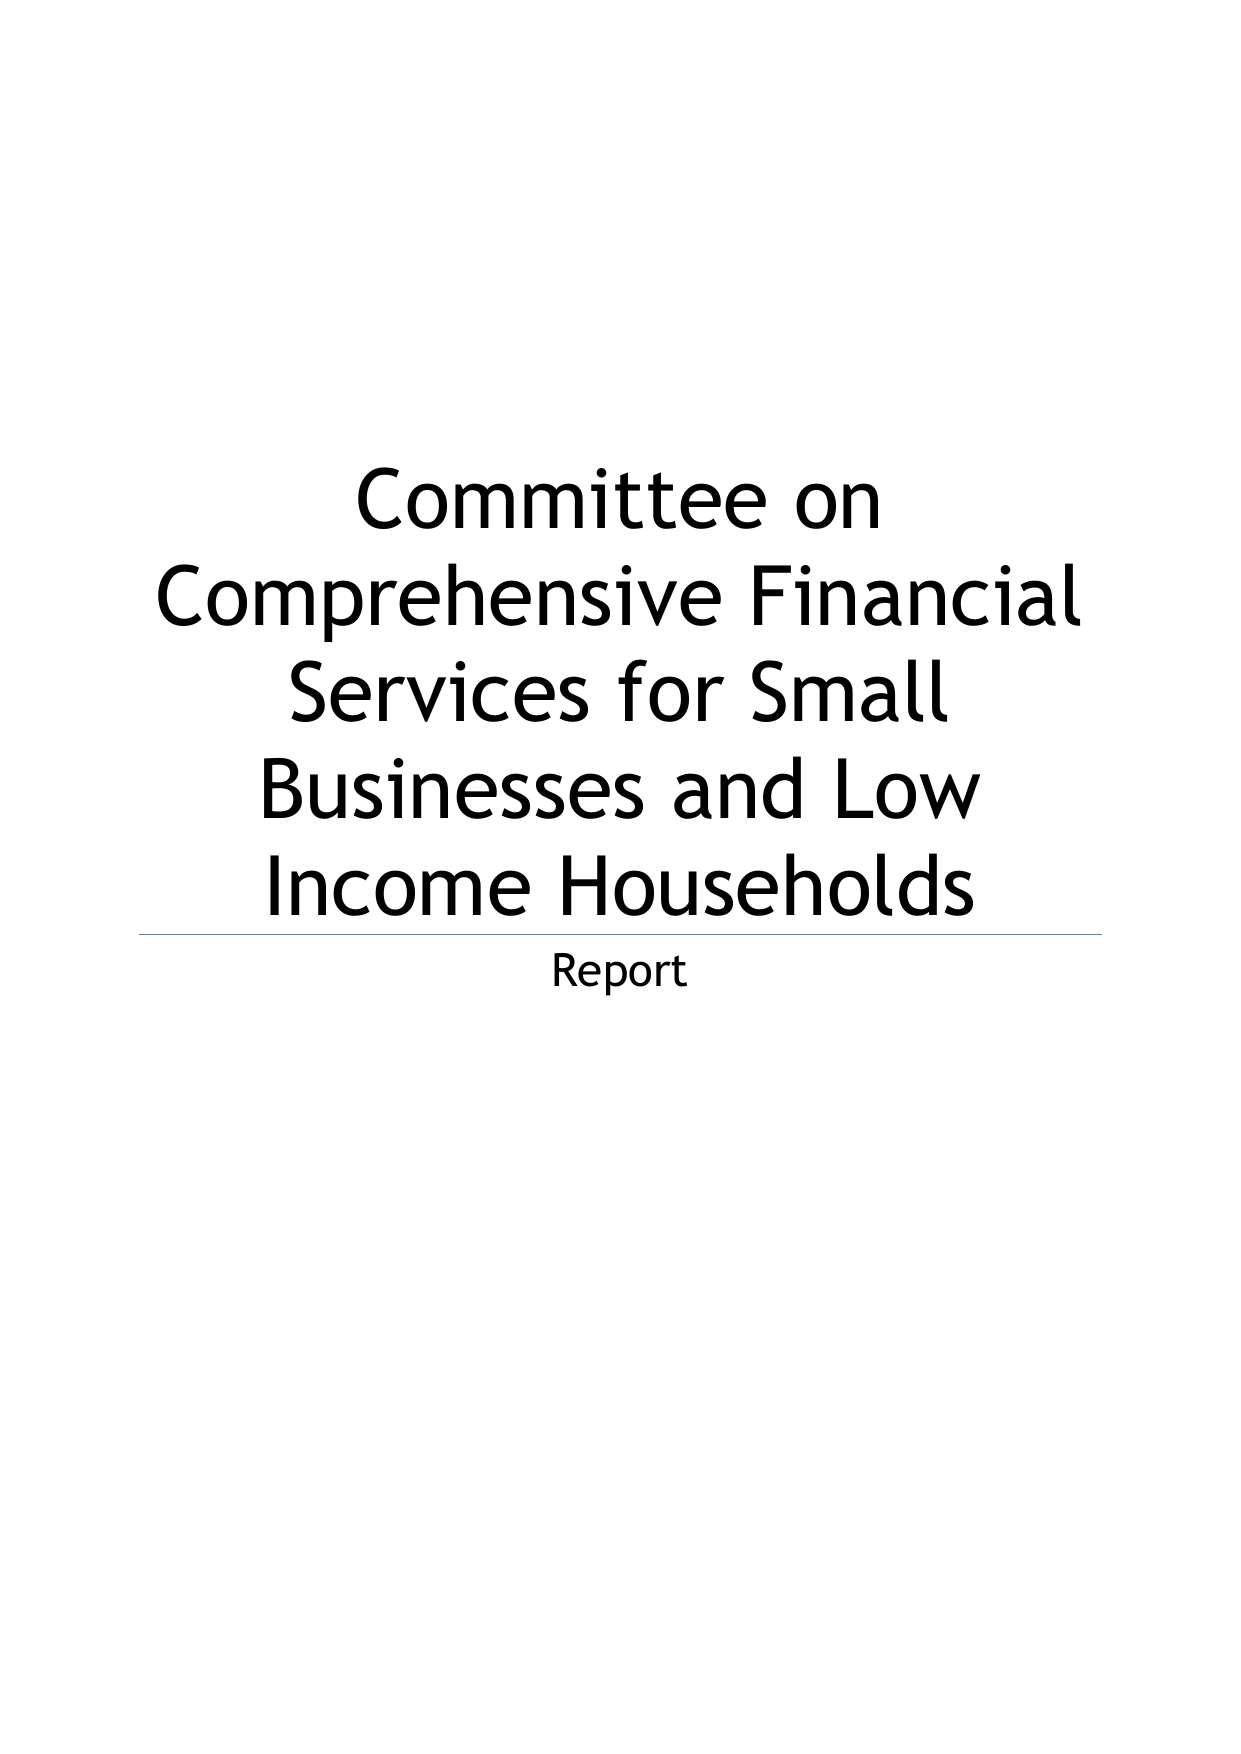 Report by the Committee on Comprehensive Financial Services for